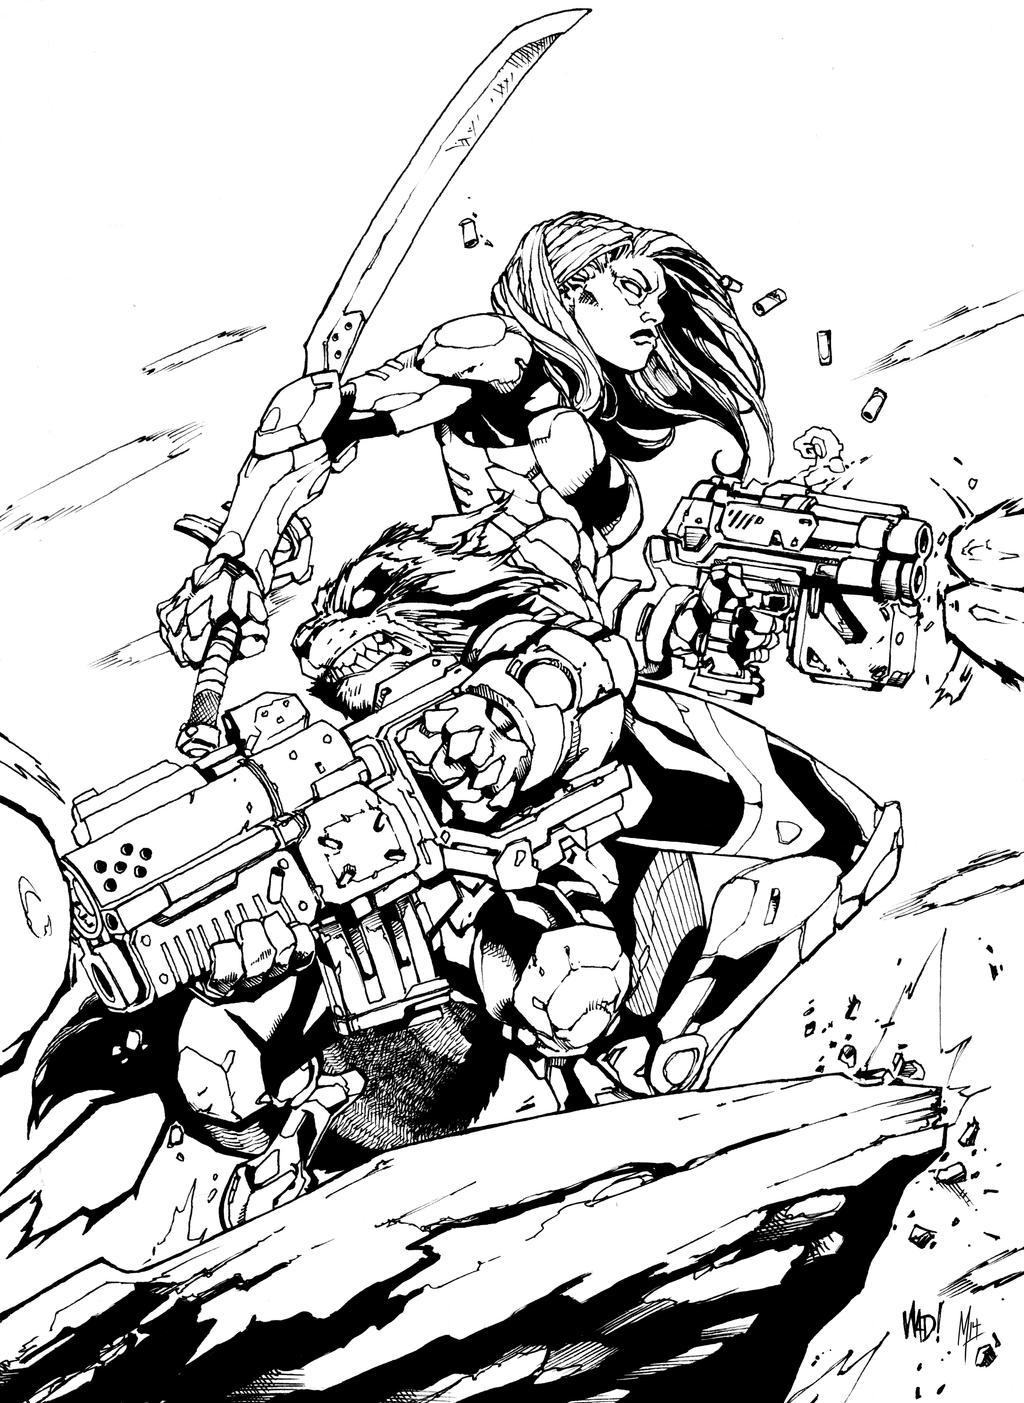 guardians of the galaxy coloring pages - guardians of the galaxy joe mad pencils bigm inks by